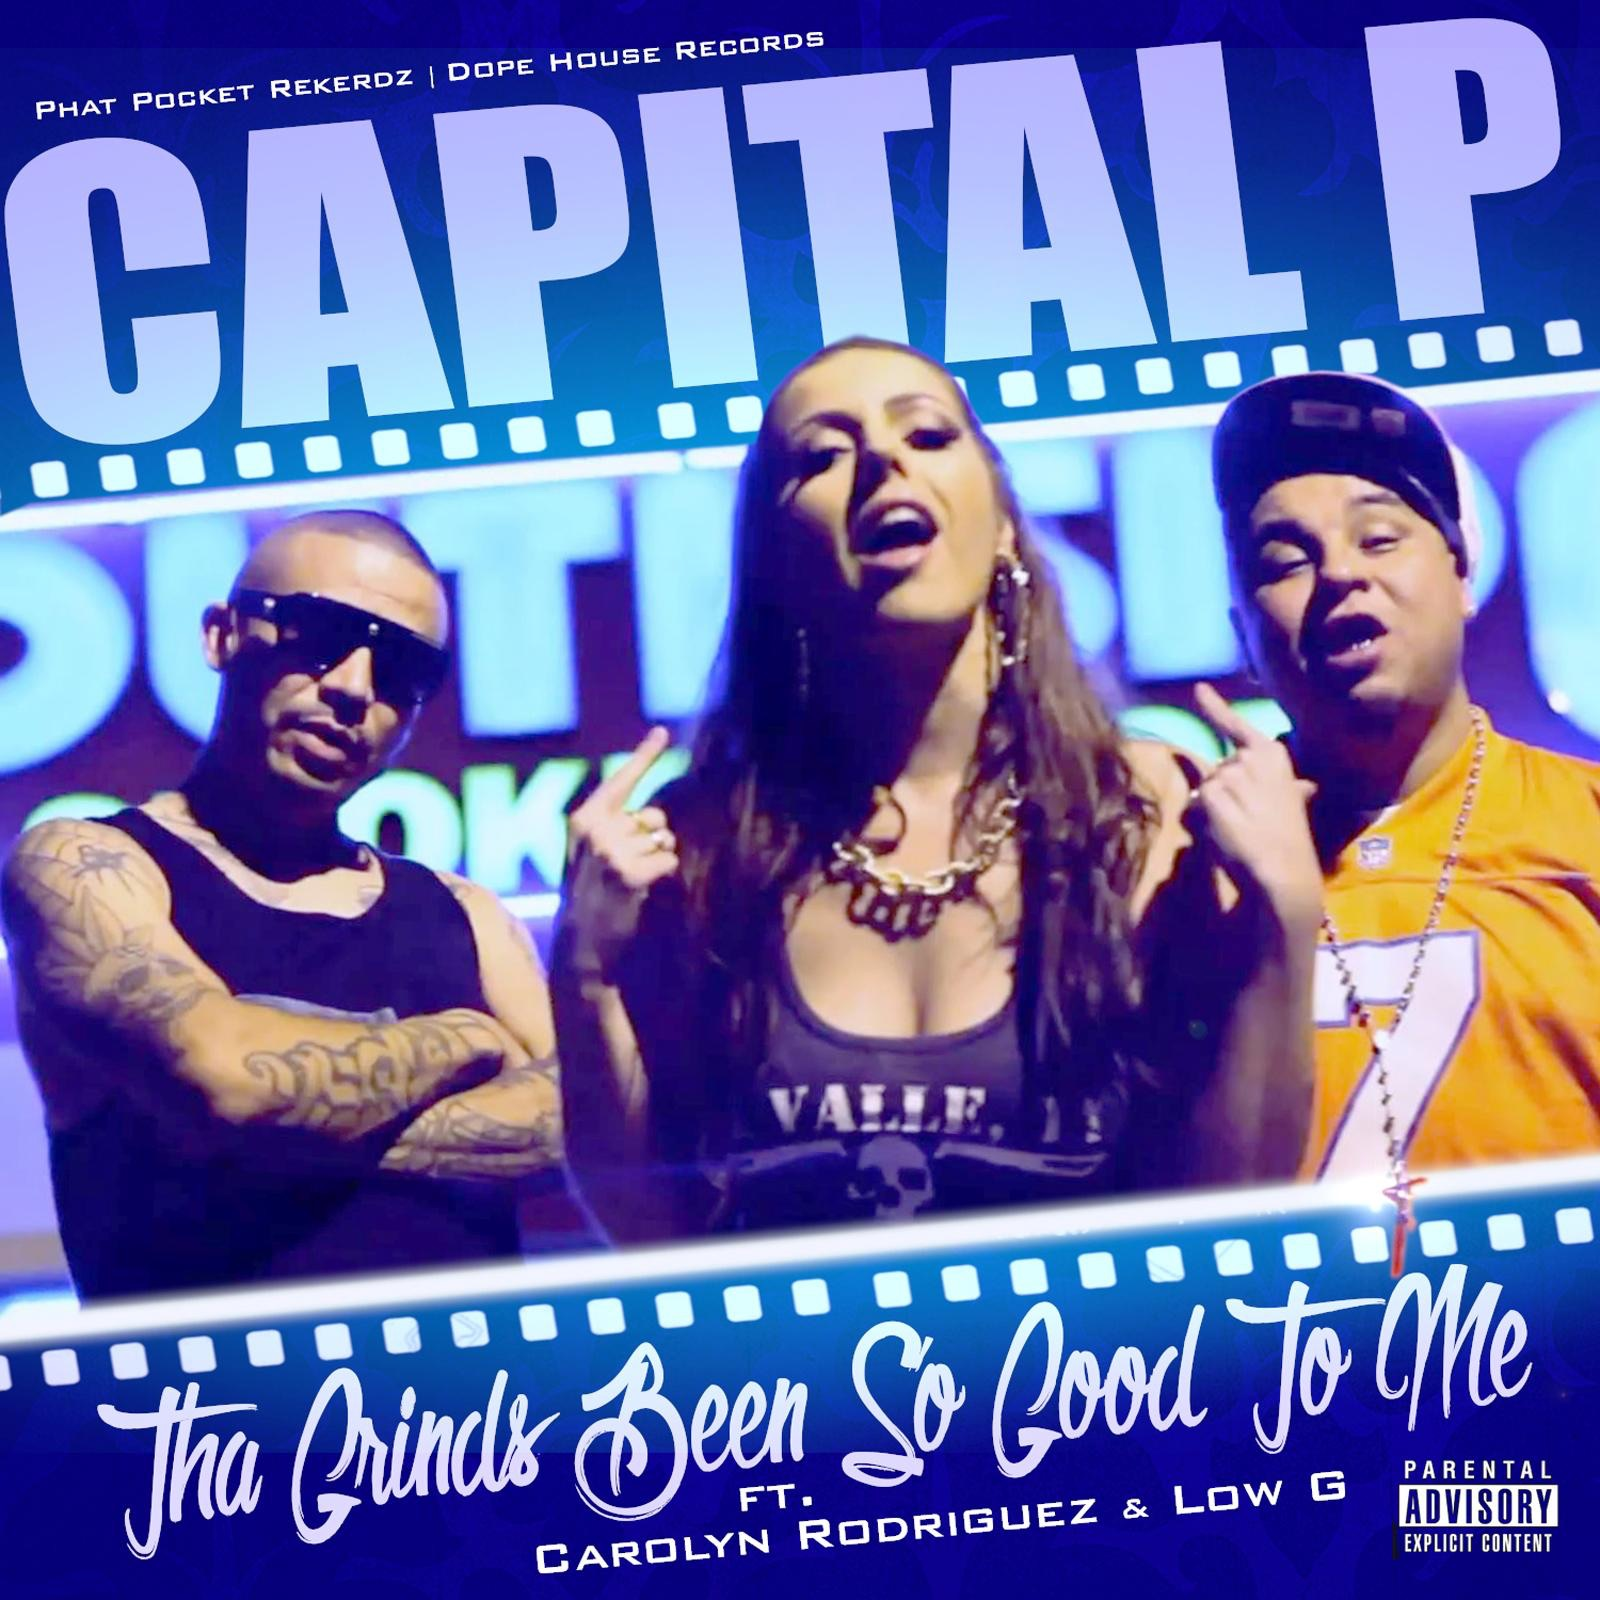 Tha Grinds Been so Good to Me (feat. Carolyn Rodriguez & Low G) - Single